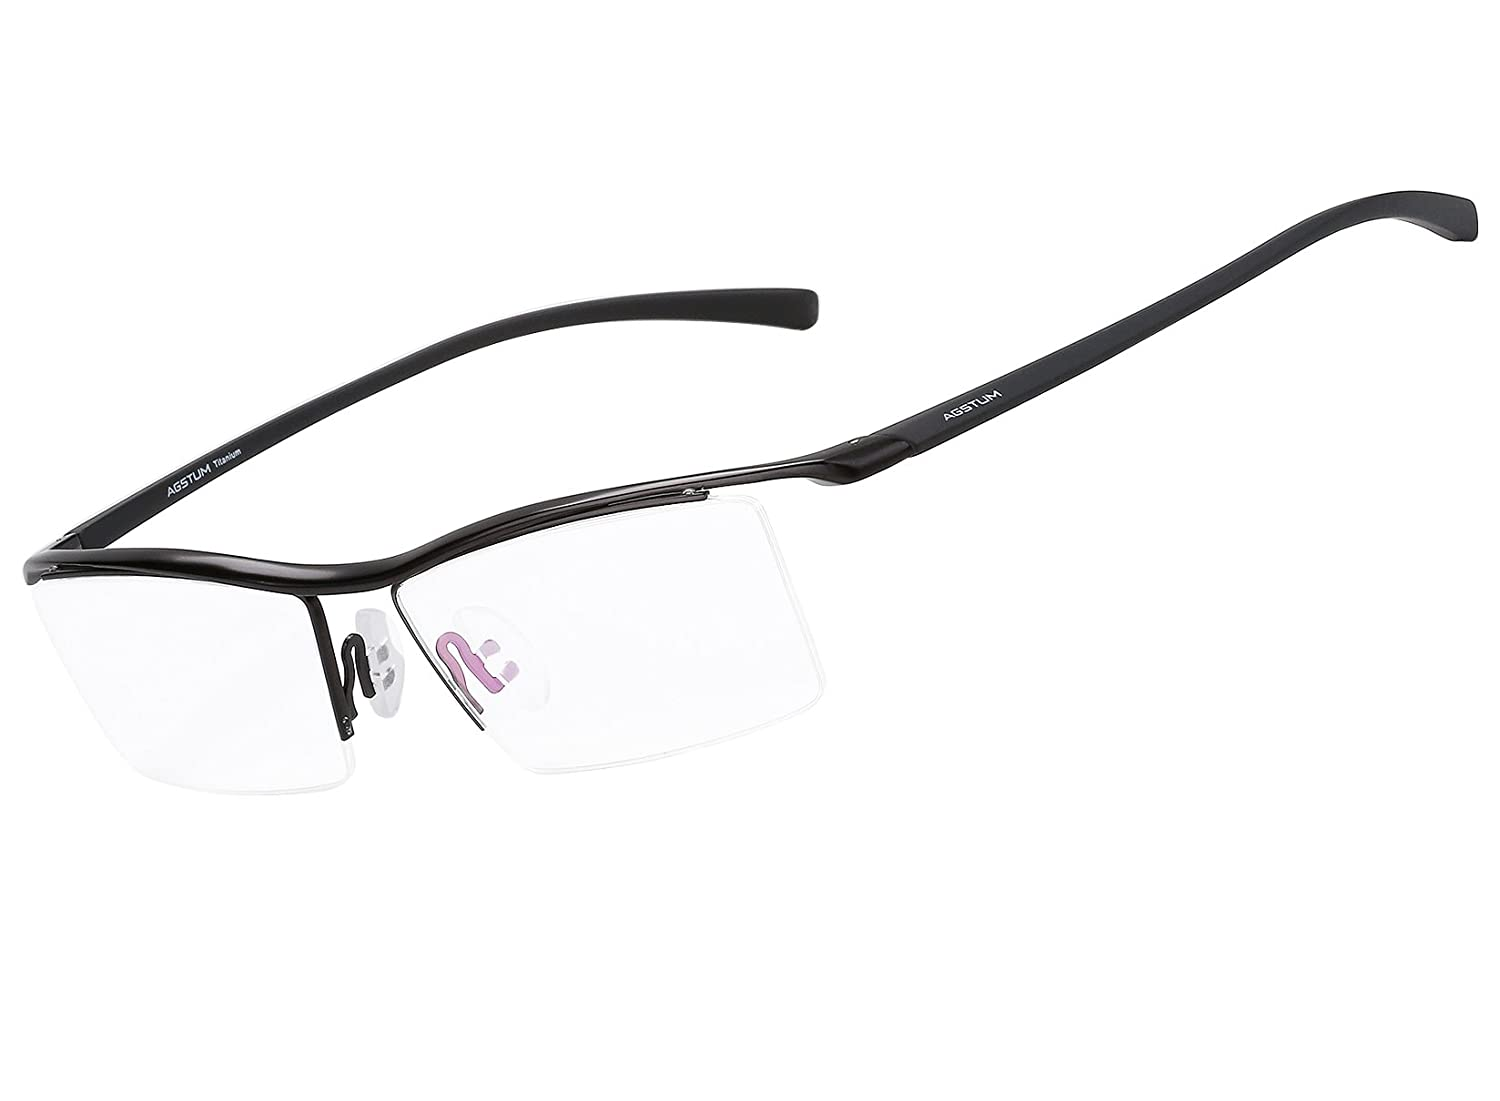 f1d5352f934 Amazon.com  Agstum Pure Titanium Half Rimless Business Glasses Frame  Optical Eyeglasses Clear Lens (Black)  Clothing